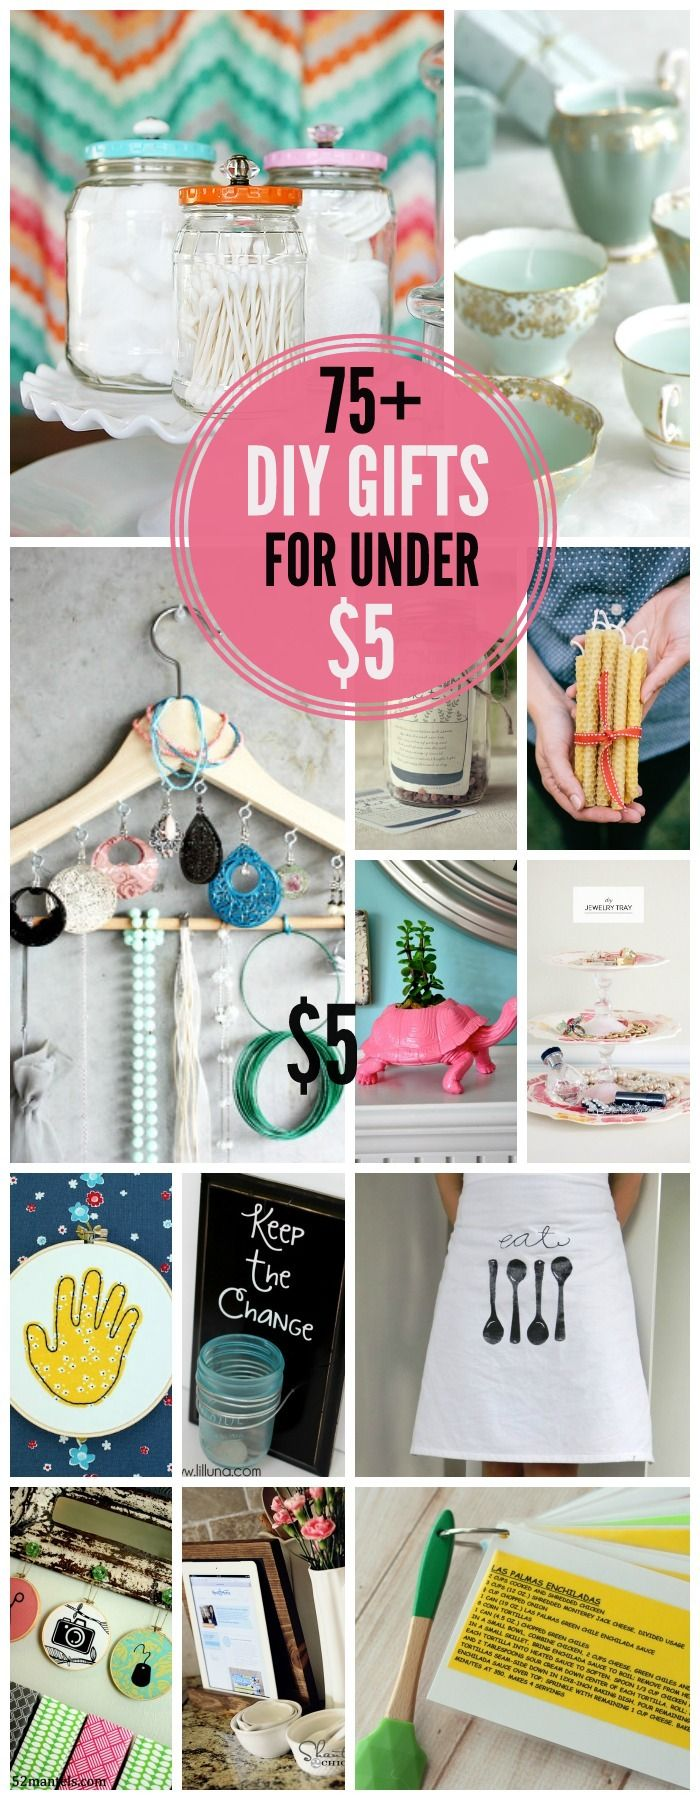 75 Handmade Gifts For Under 5 So Many Great Gift Ideas In One Place I Found This Just Time The Holiday Season But Are